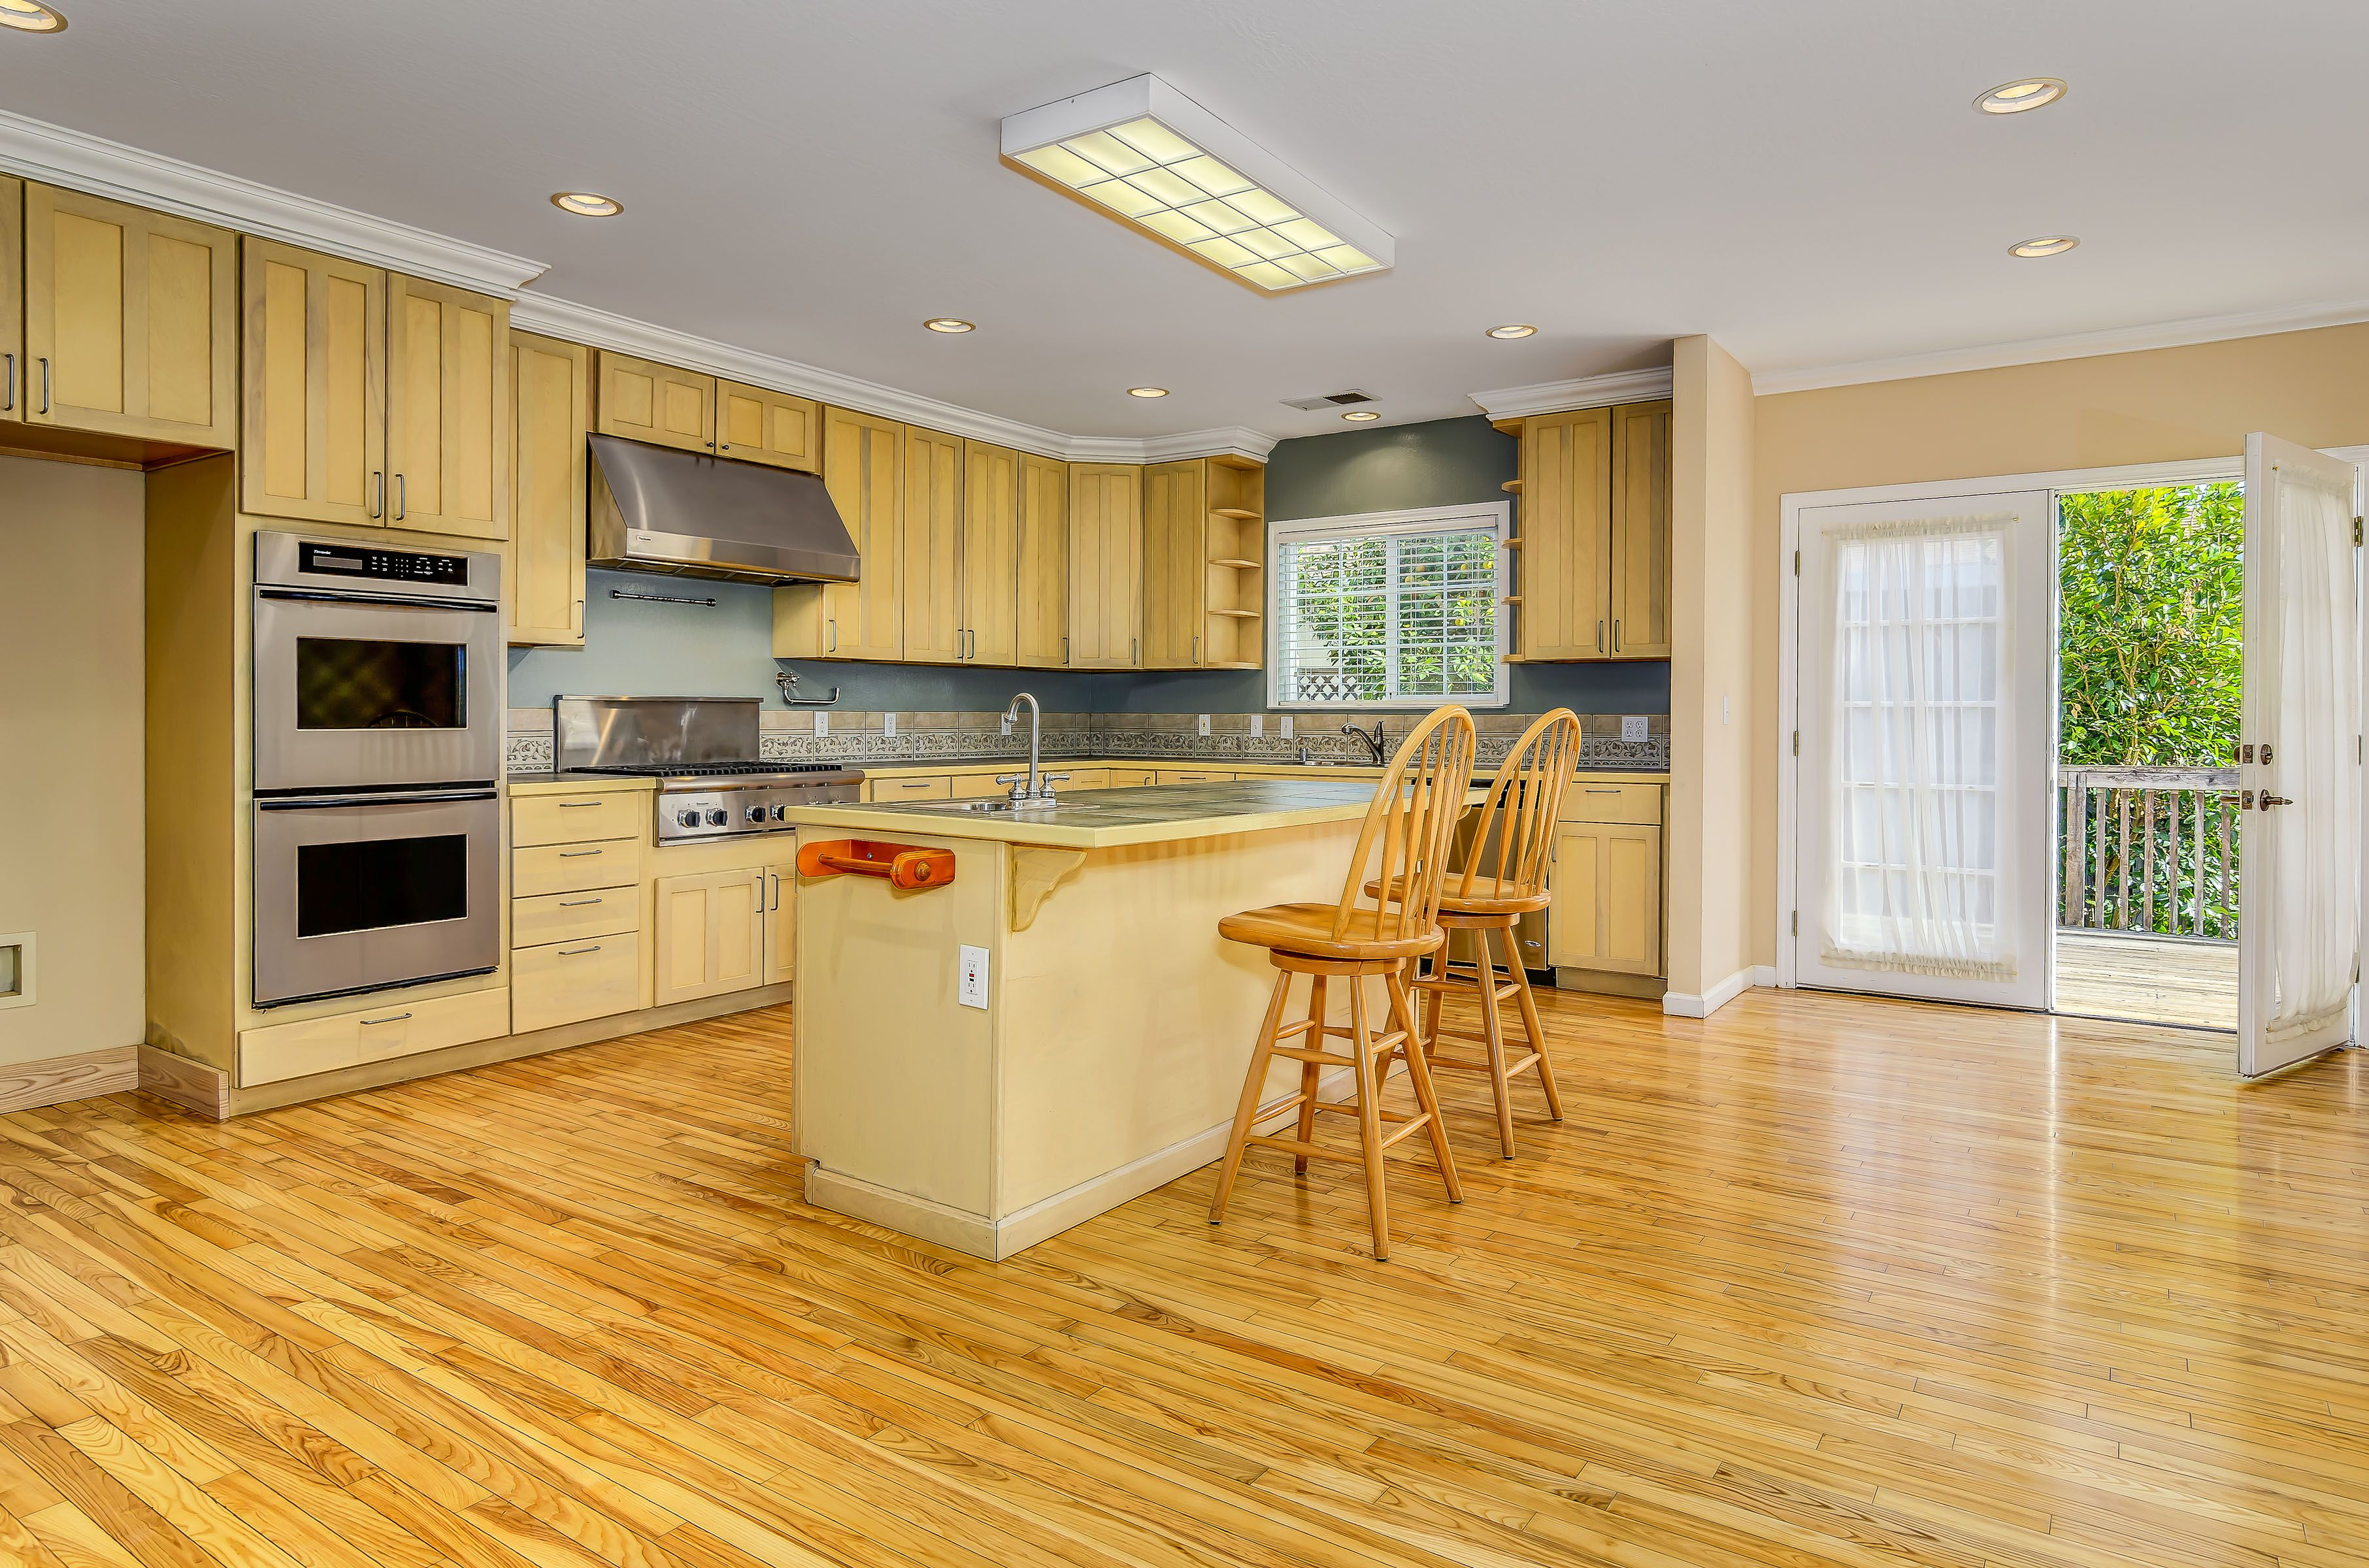 Beautiful kitchen and dining area. This house is for sale